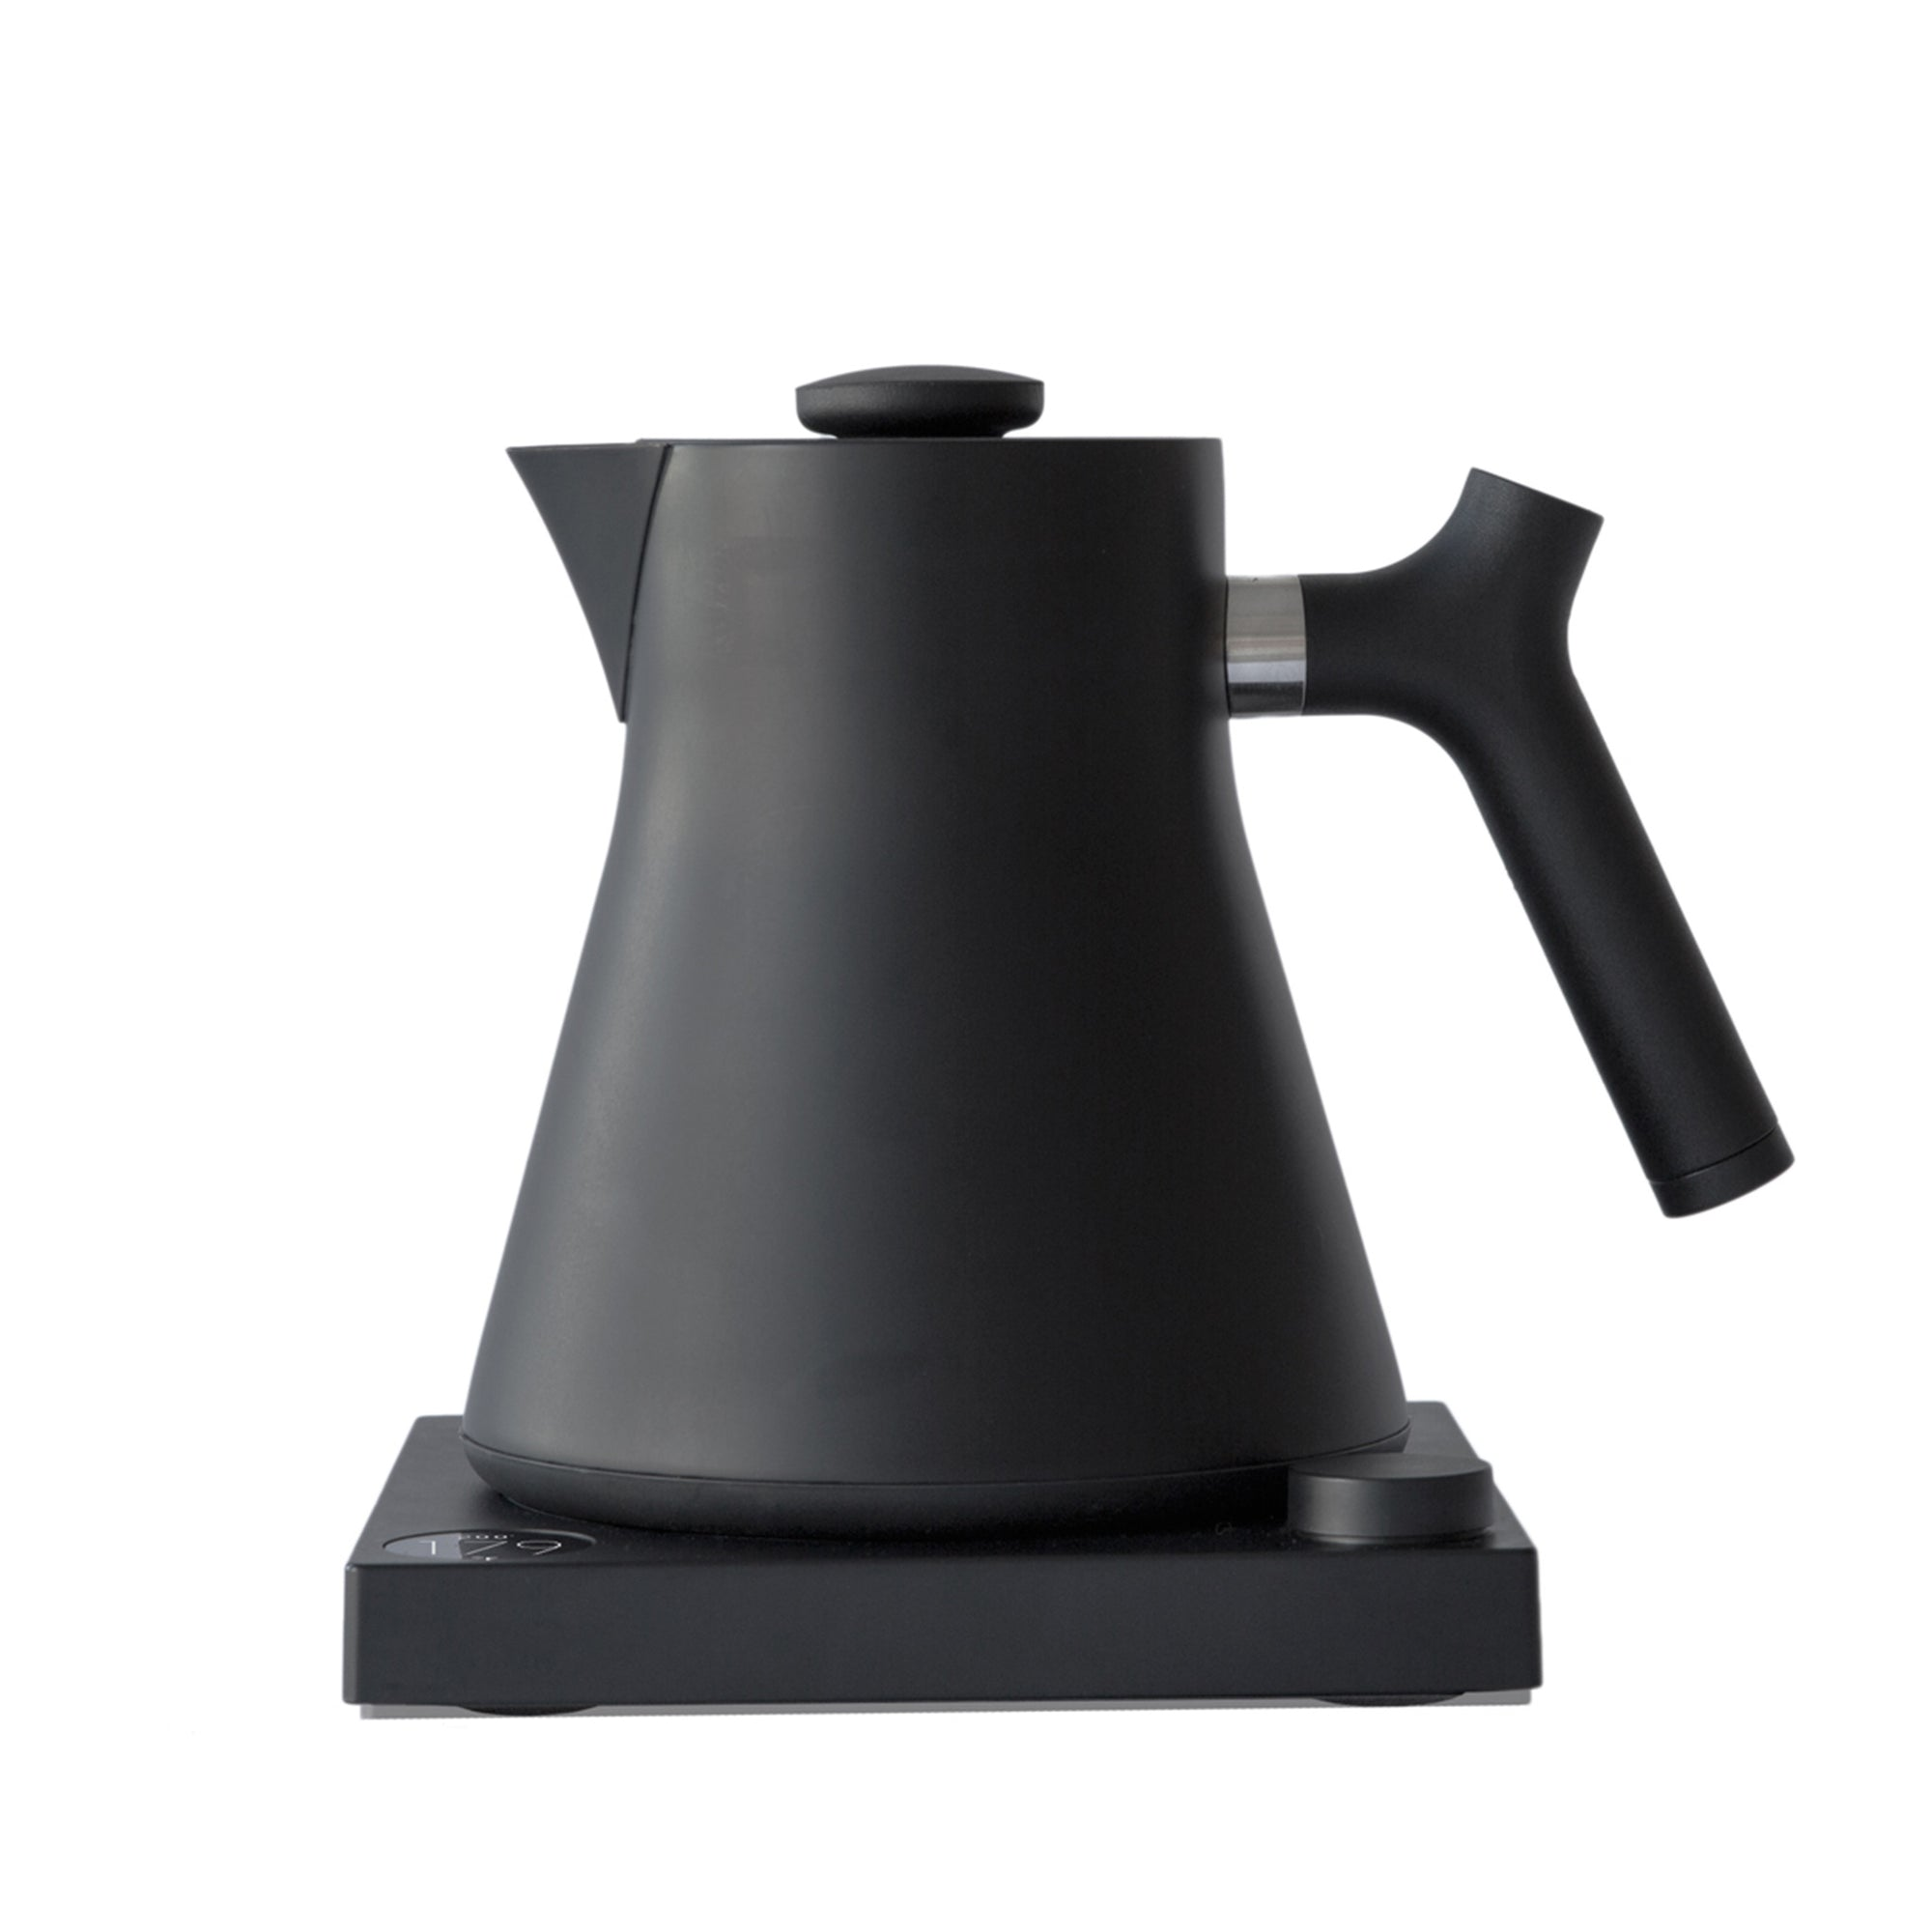 Kettle Corvo EKG Black 0.9L - Fellow - Espresso Gear